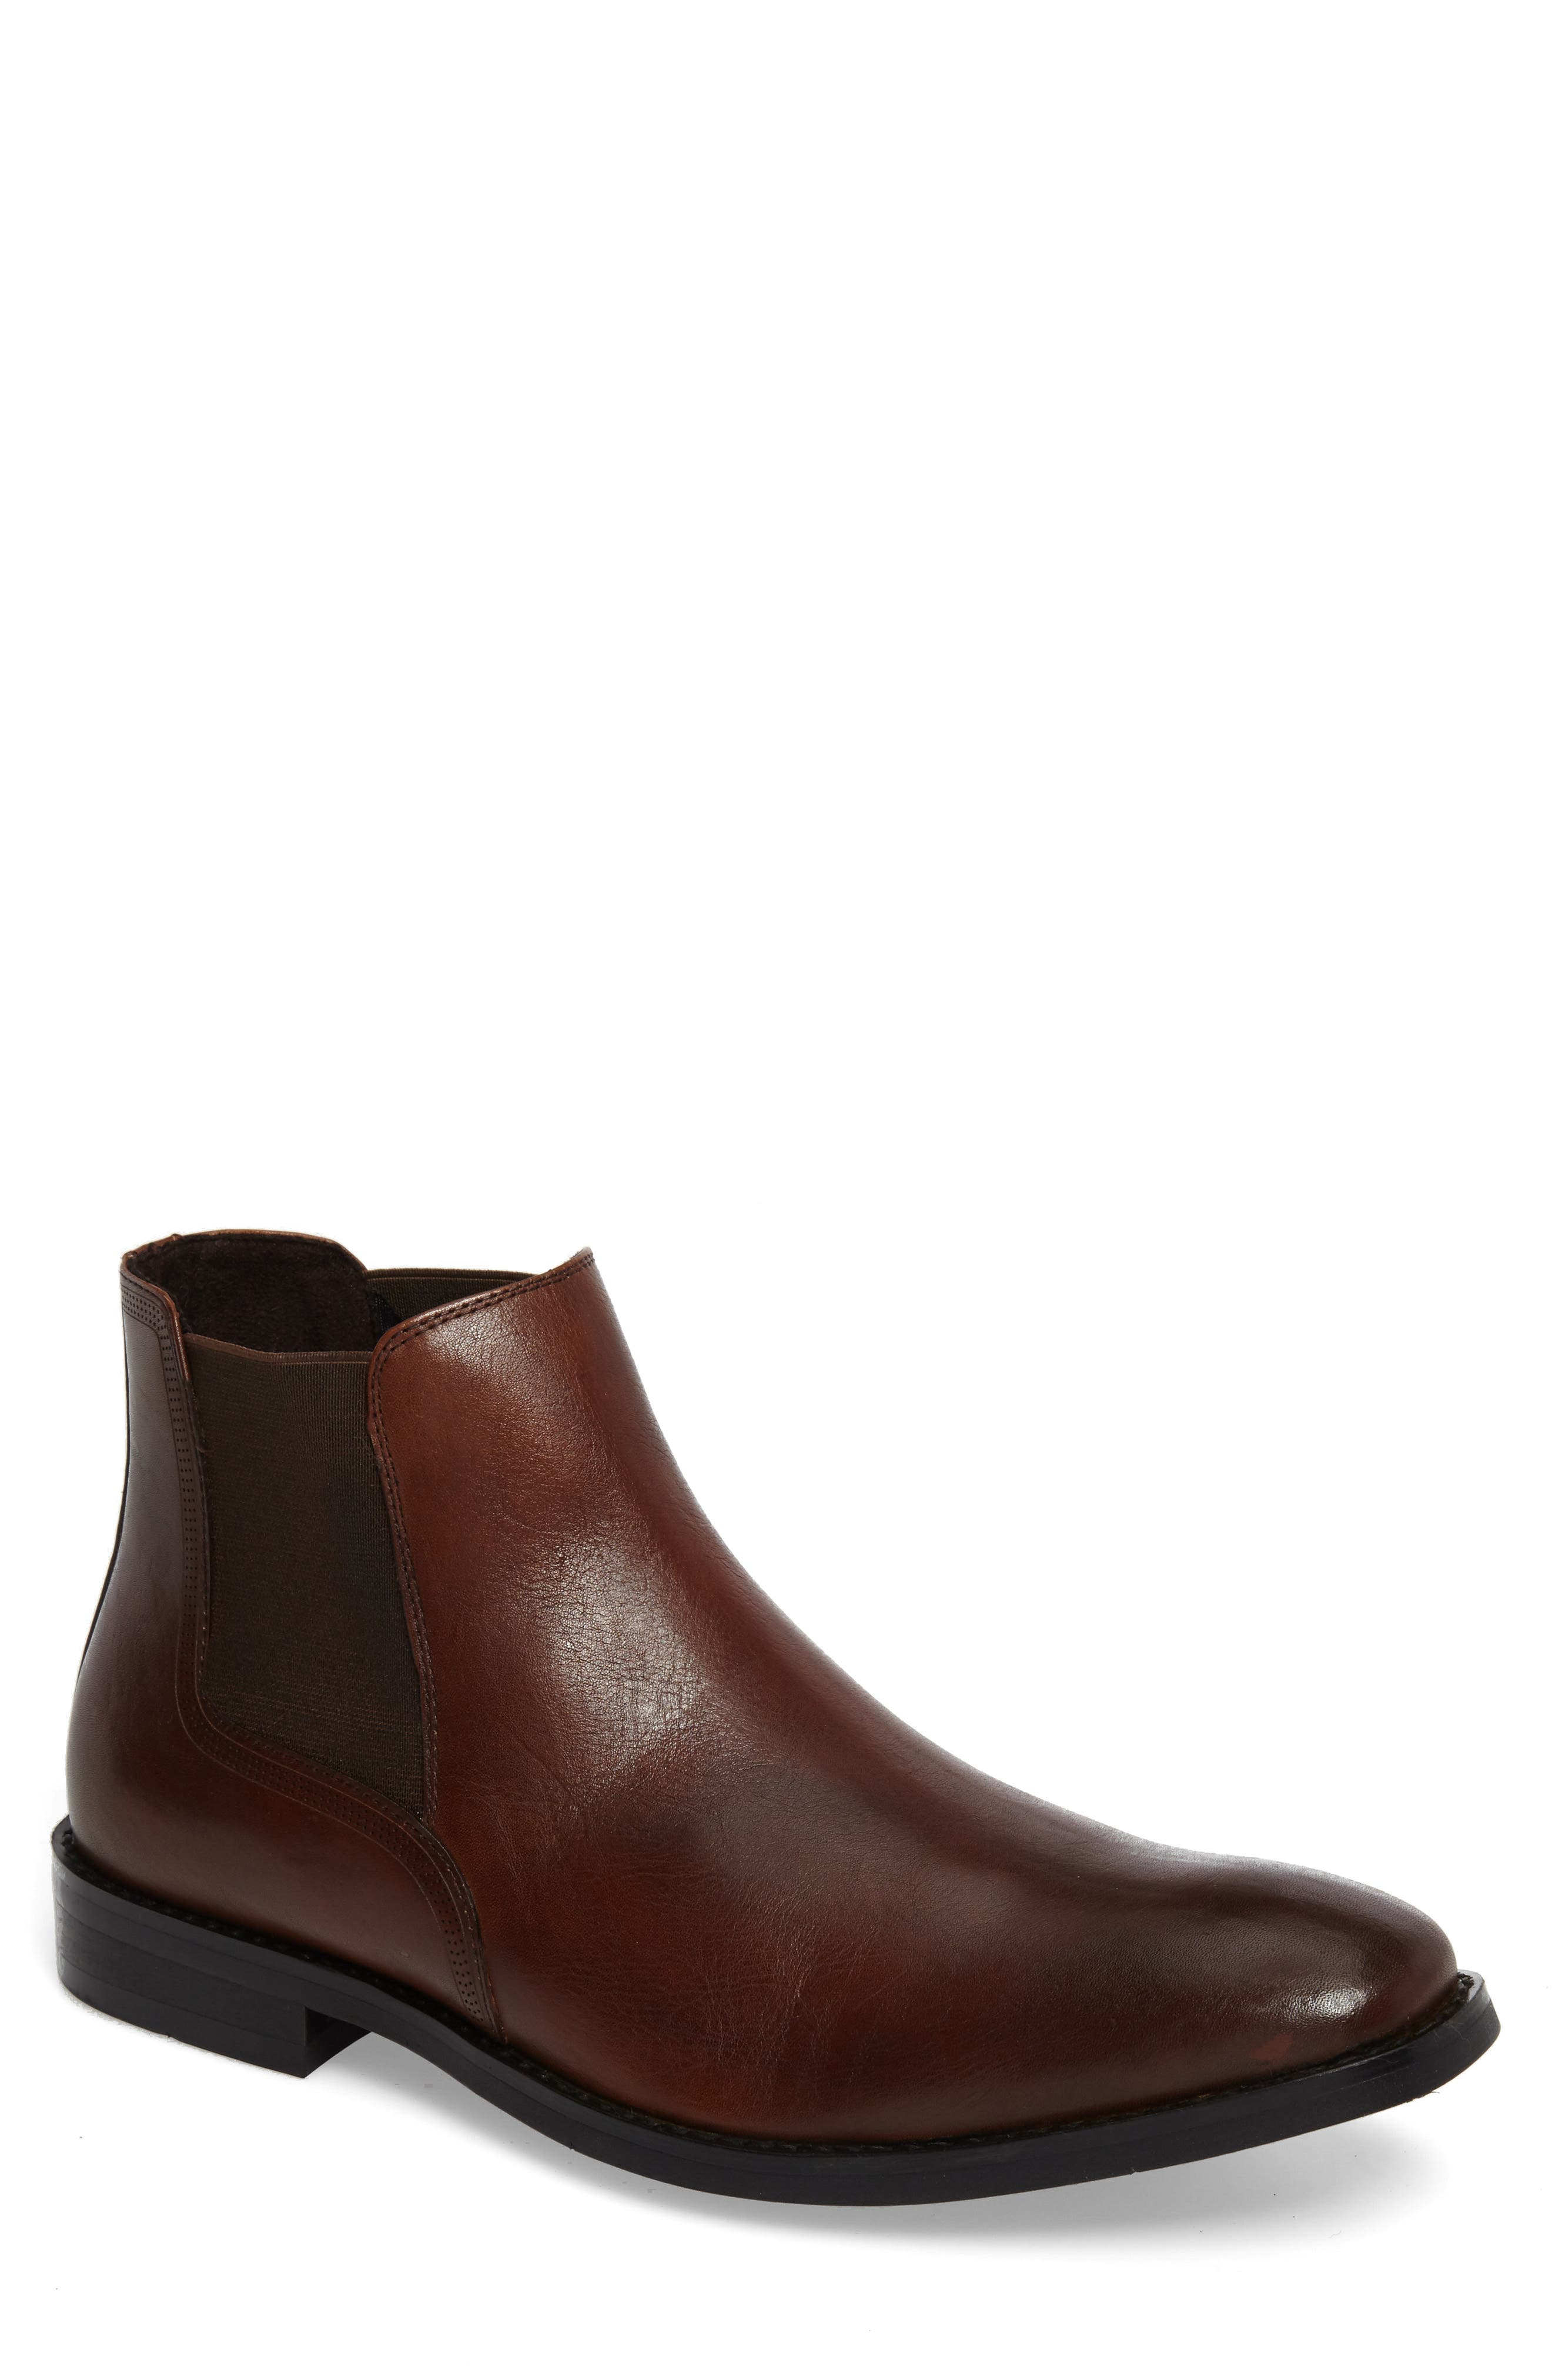 Chelsea Boot,                         Main,                         color, 200